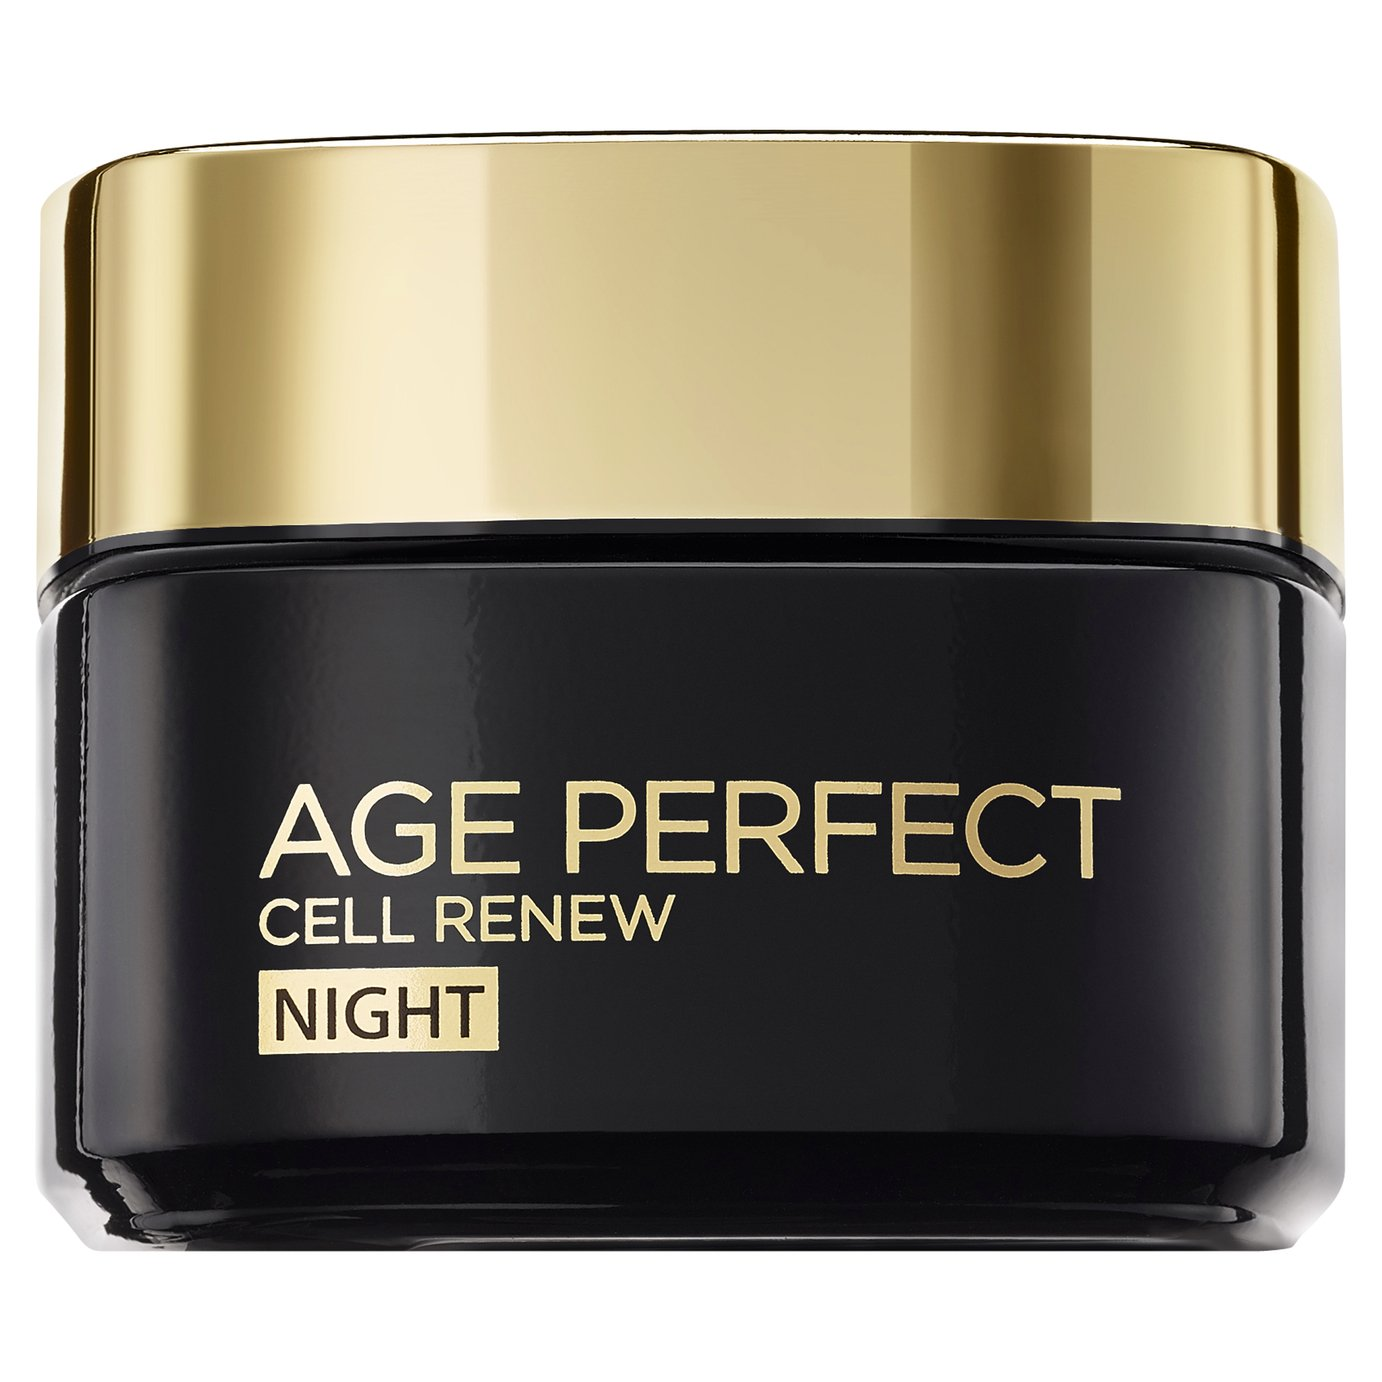 L'Oreal Paris Skin Age Perfect Cell Renew Night Cream - 50ml